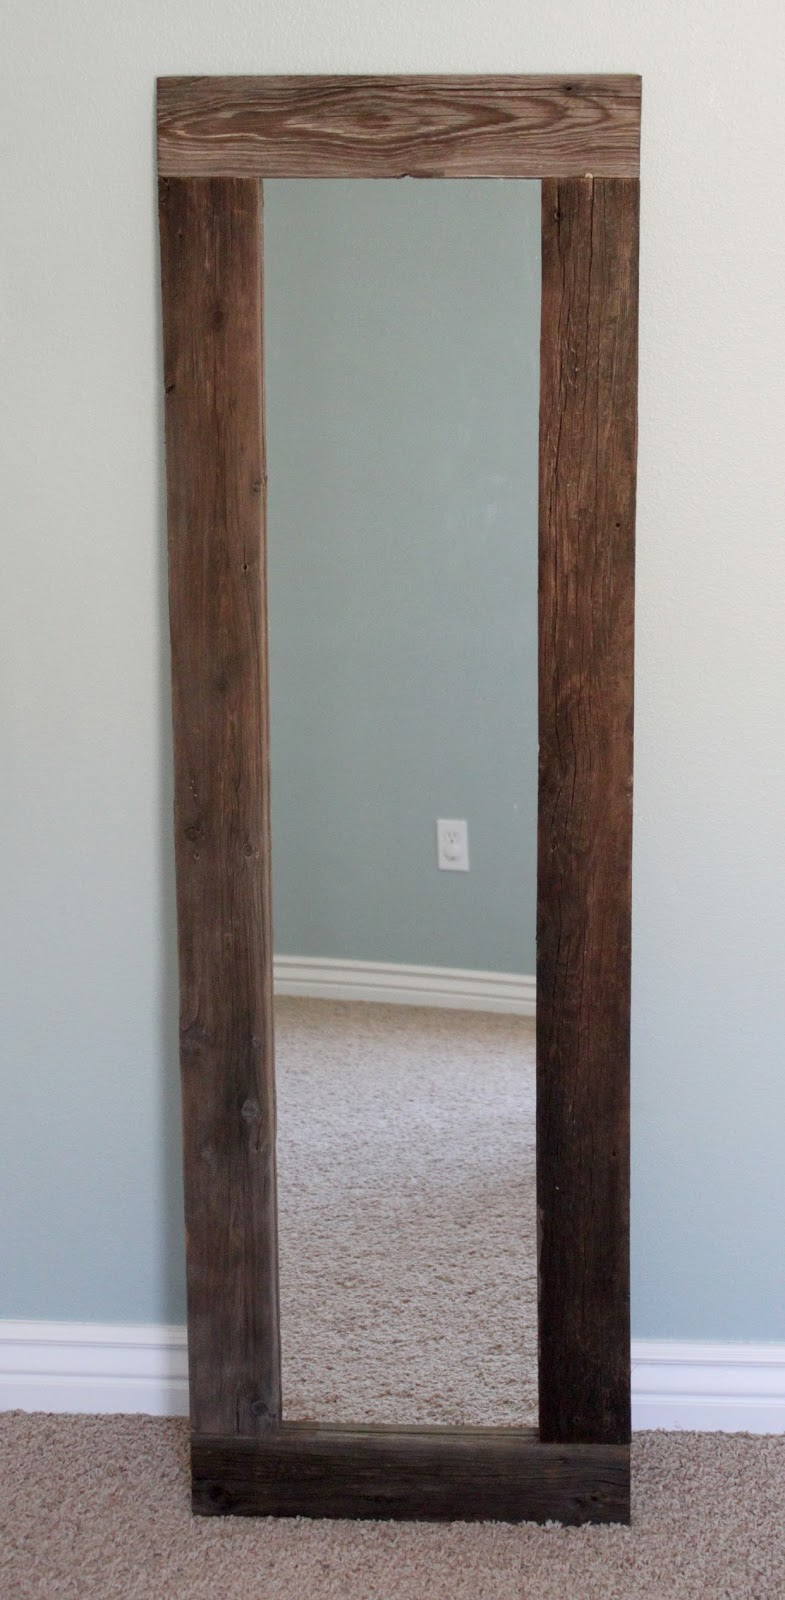 Reclaimed Wood Mirror | Reclaimed Wood Framed Mirror | Beech Wood Framed Mirrors